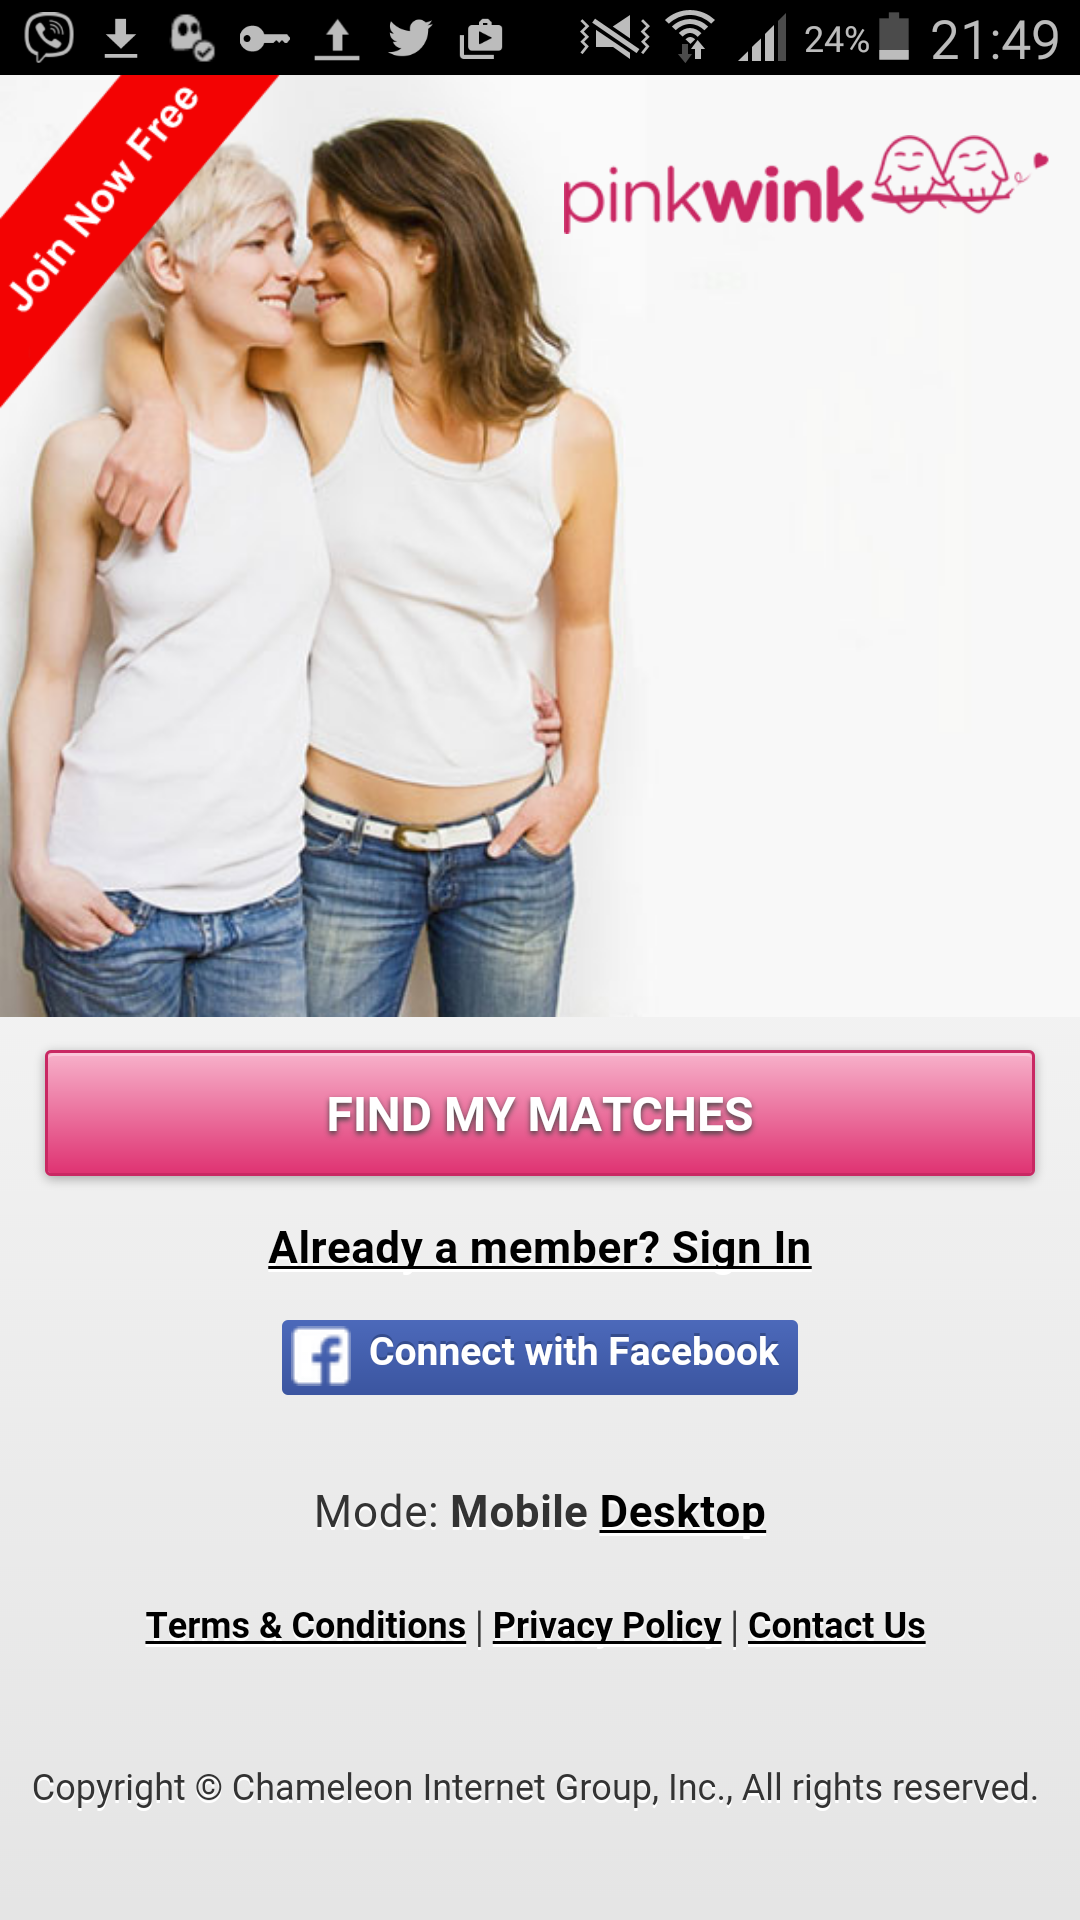 stahlstown lesbian dating site We know you're more substance than just a selfie okcupid shows off who you  really are, and helps you connect with lesbian singles you'll click with.